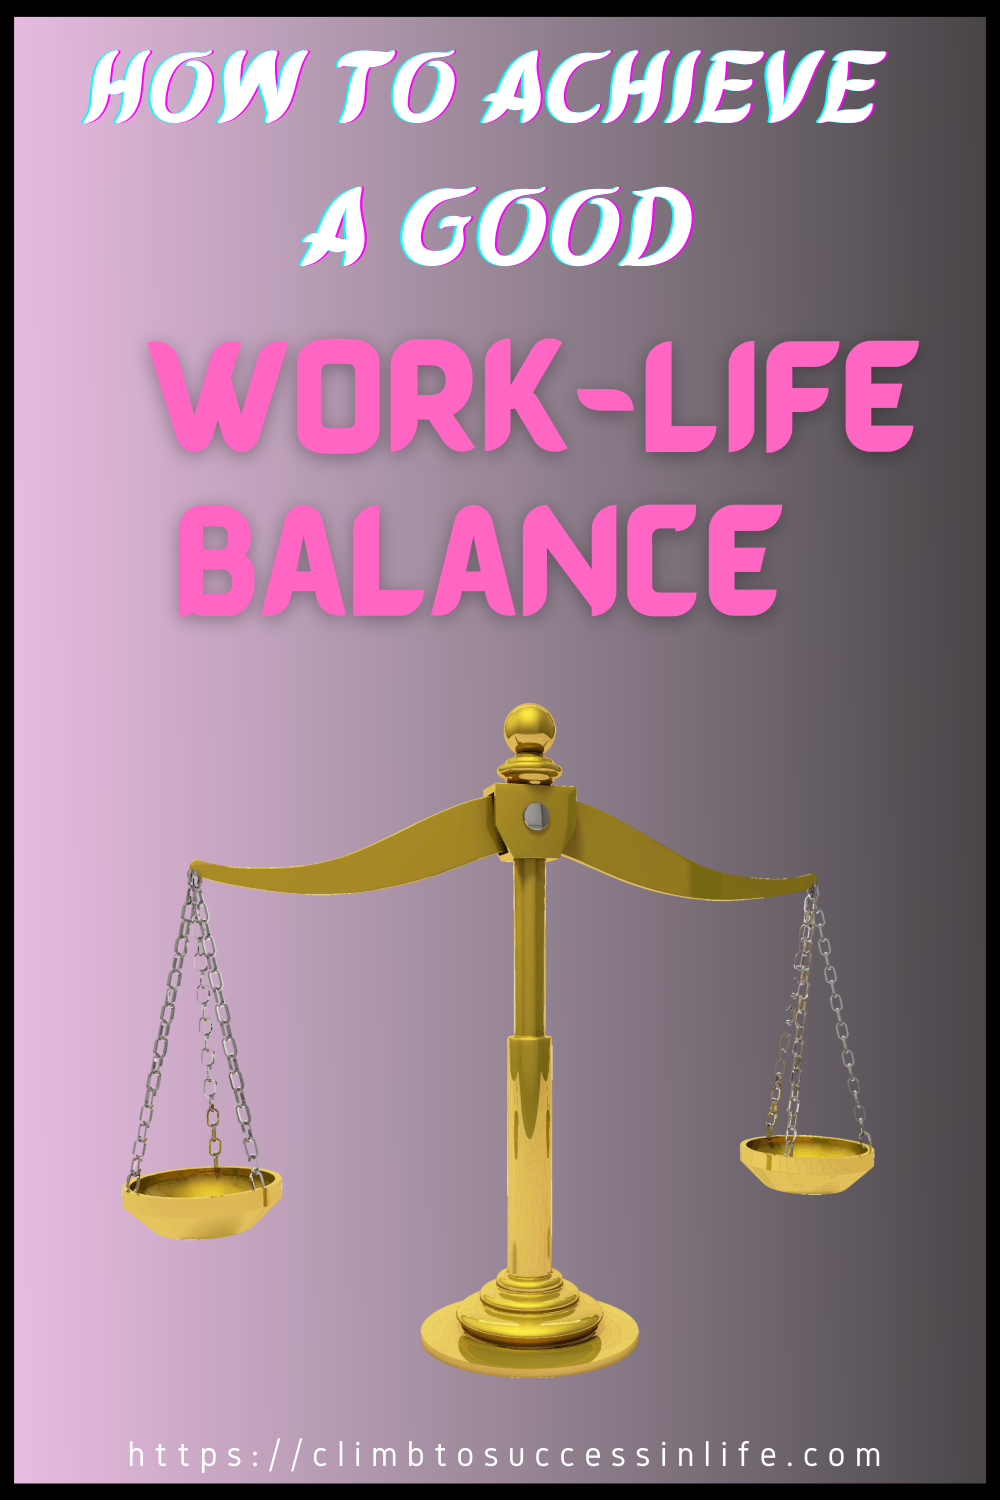 How to achieve a good worklife balance